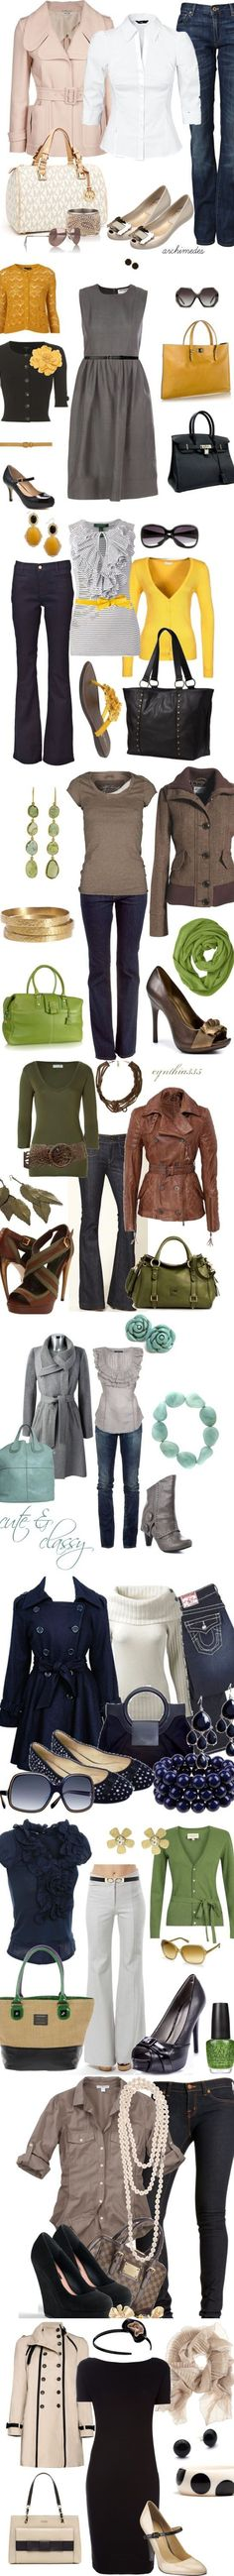 26 Cute Fall Fashions